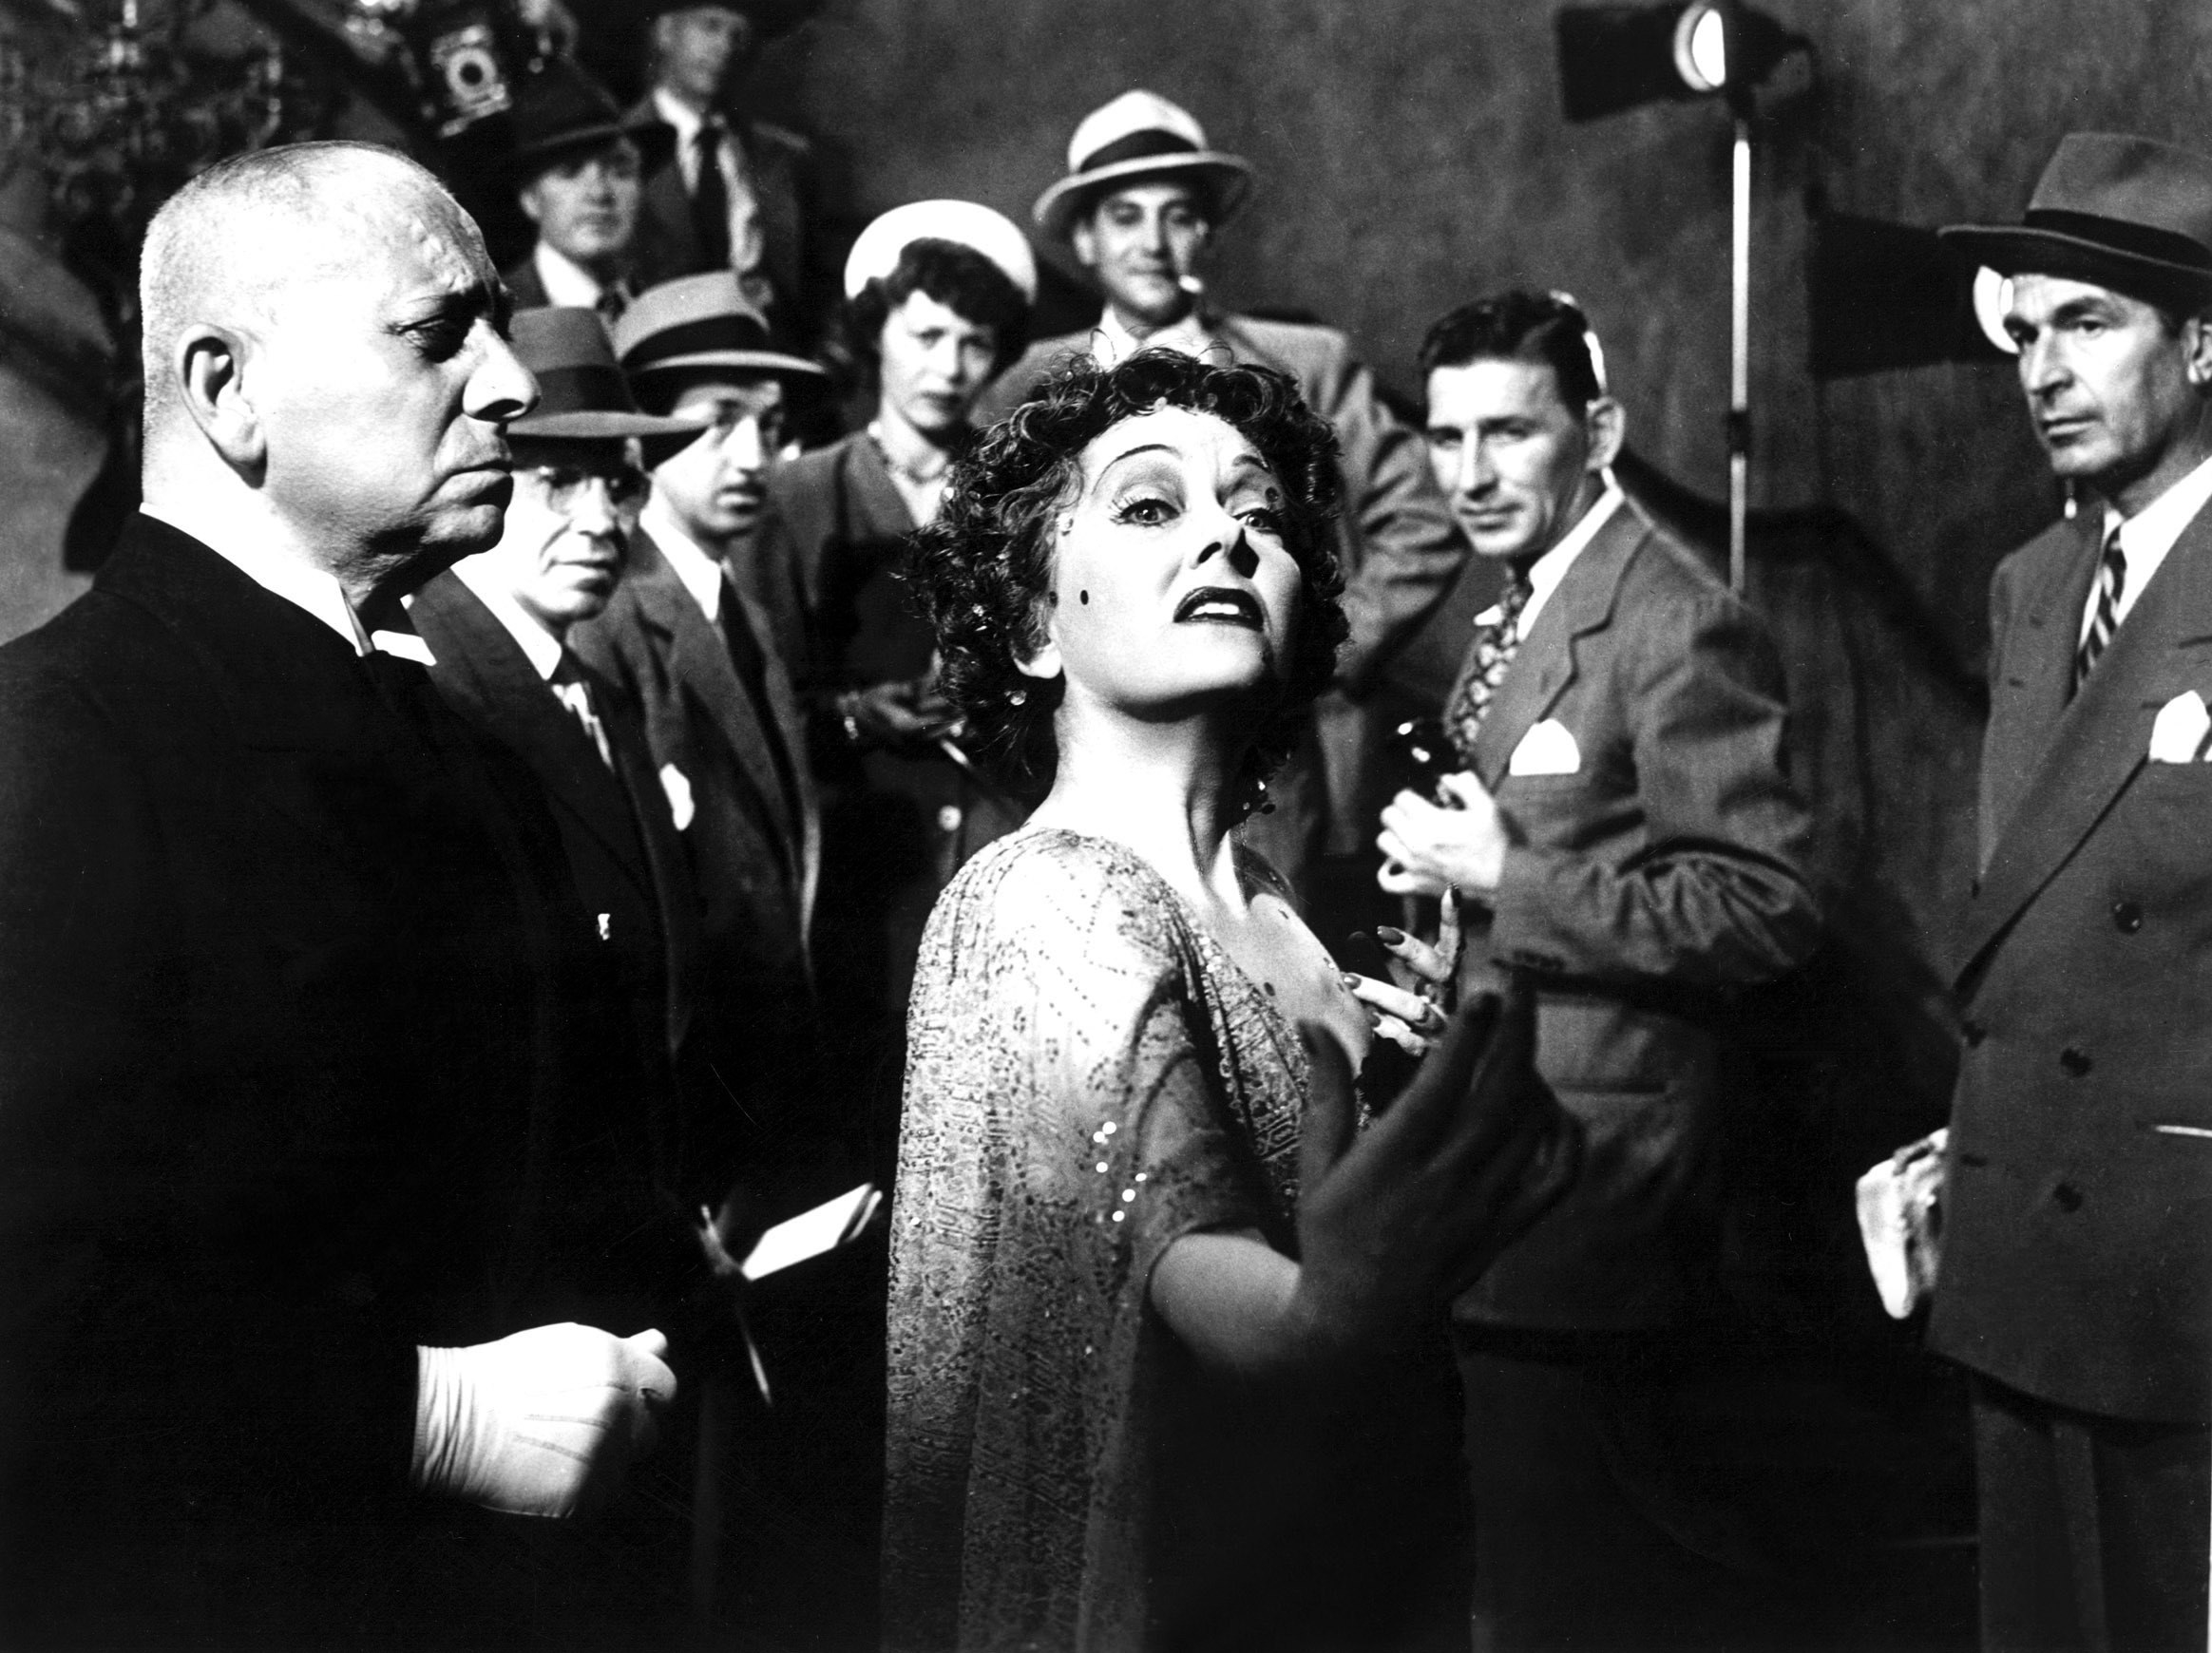 Gloria Swanson descends a staircase full of people